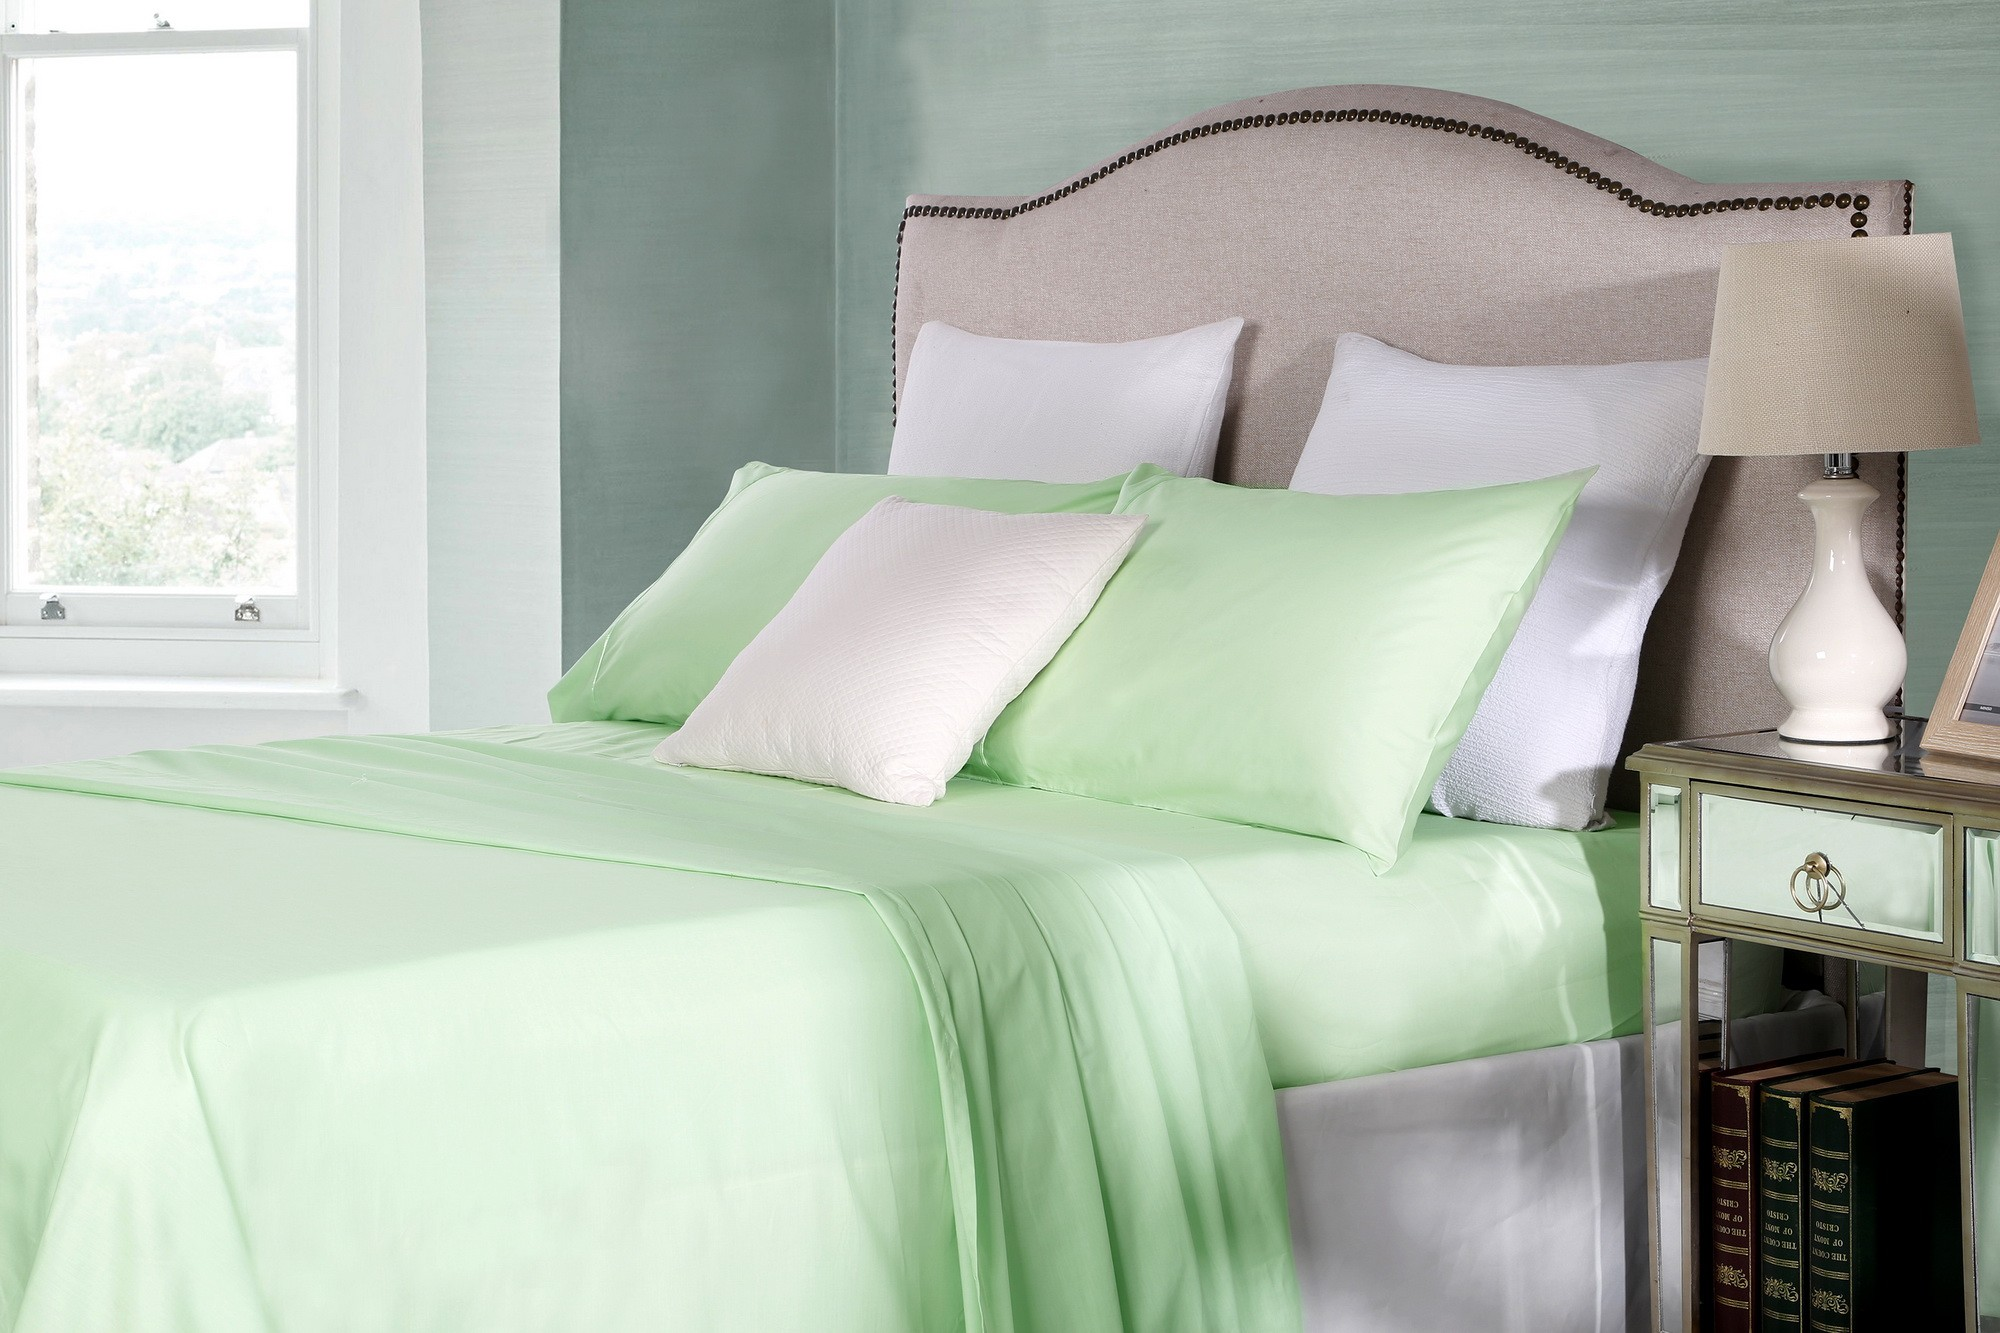 Cotton Rich King Sheet Sets 250TC Percale Soft Mint